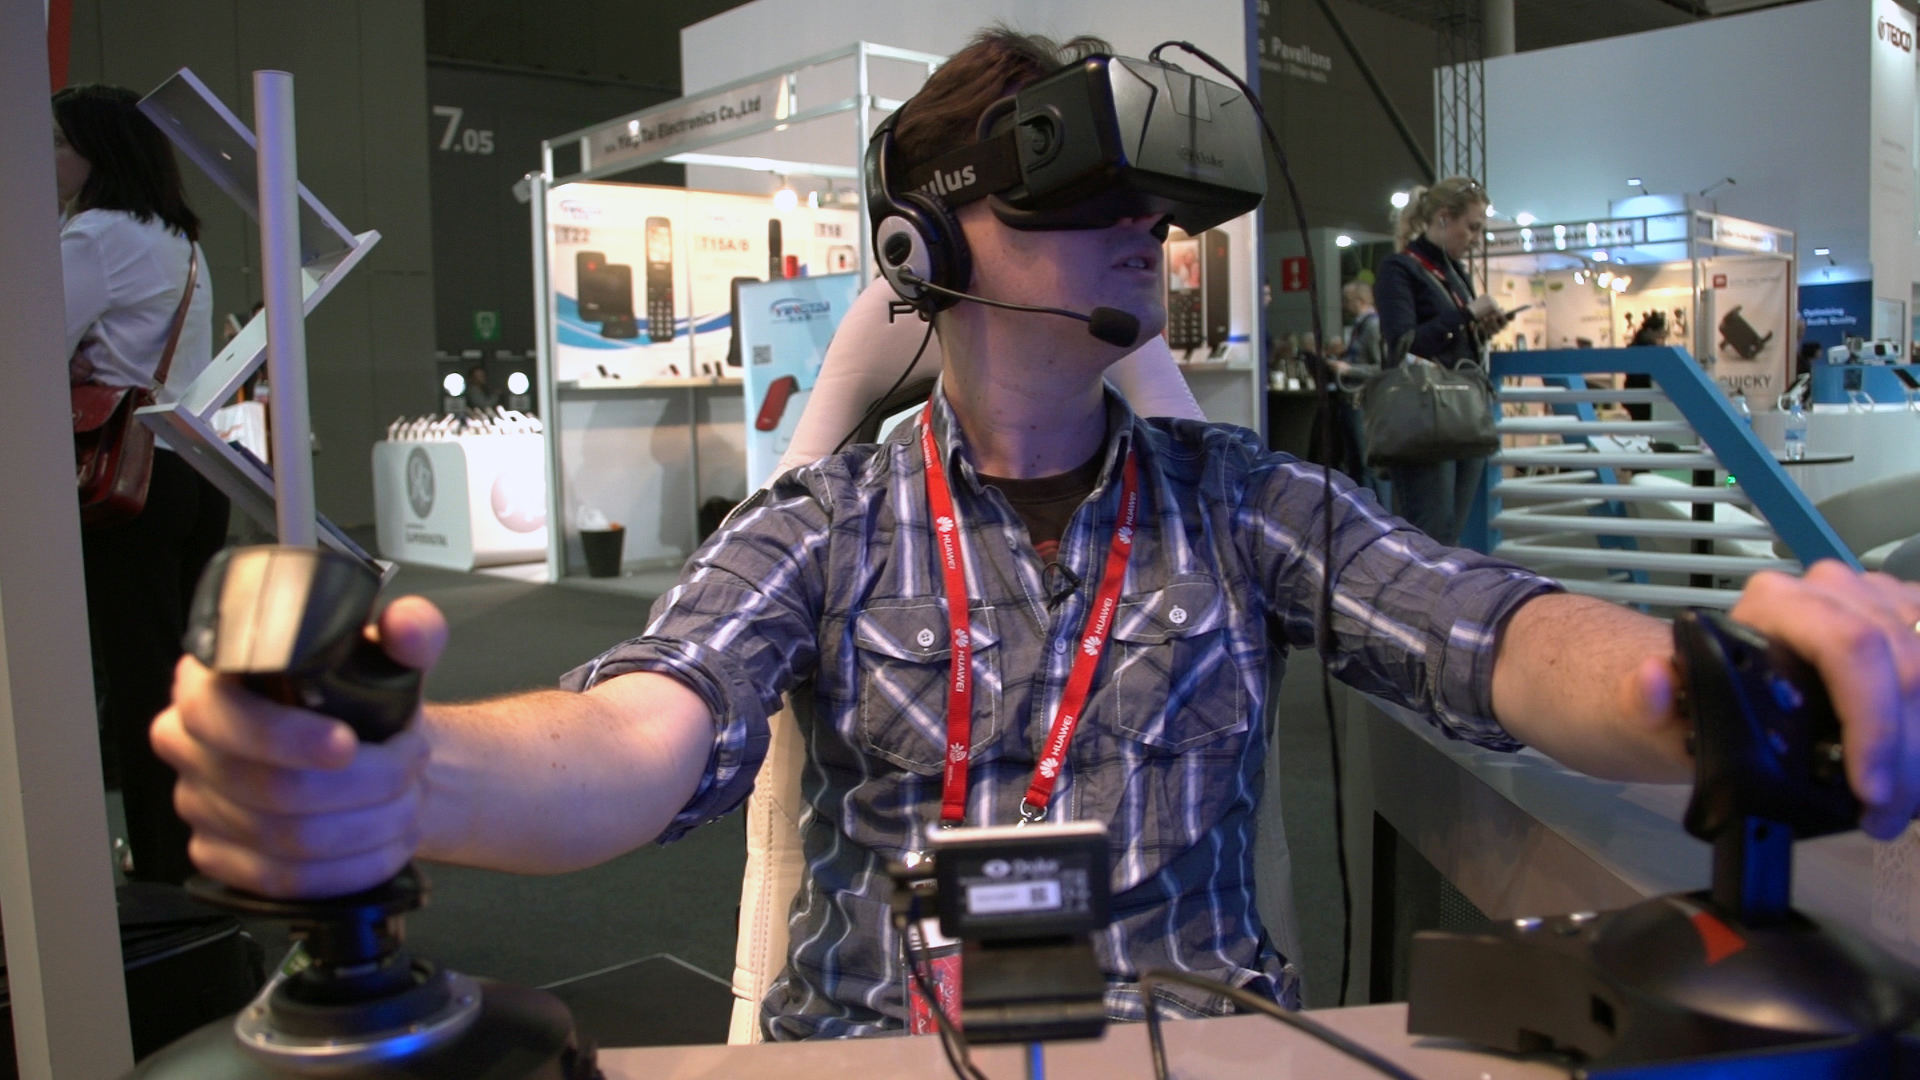 Video: CNET puts team VR to the test in virtual Mars mission